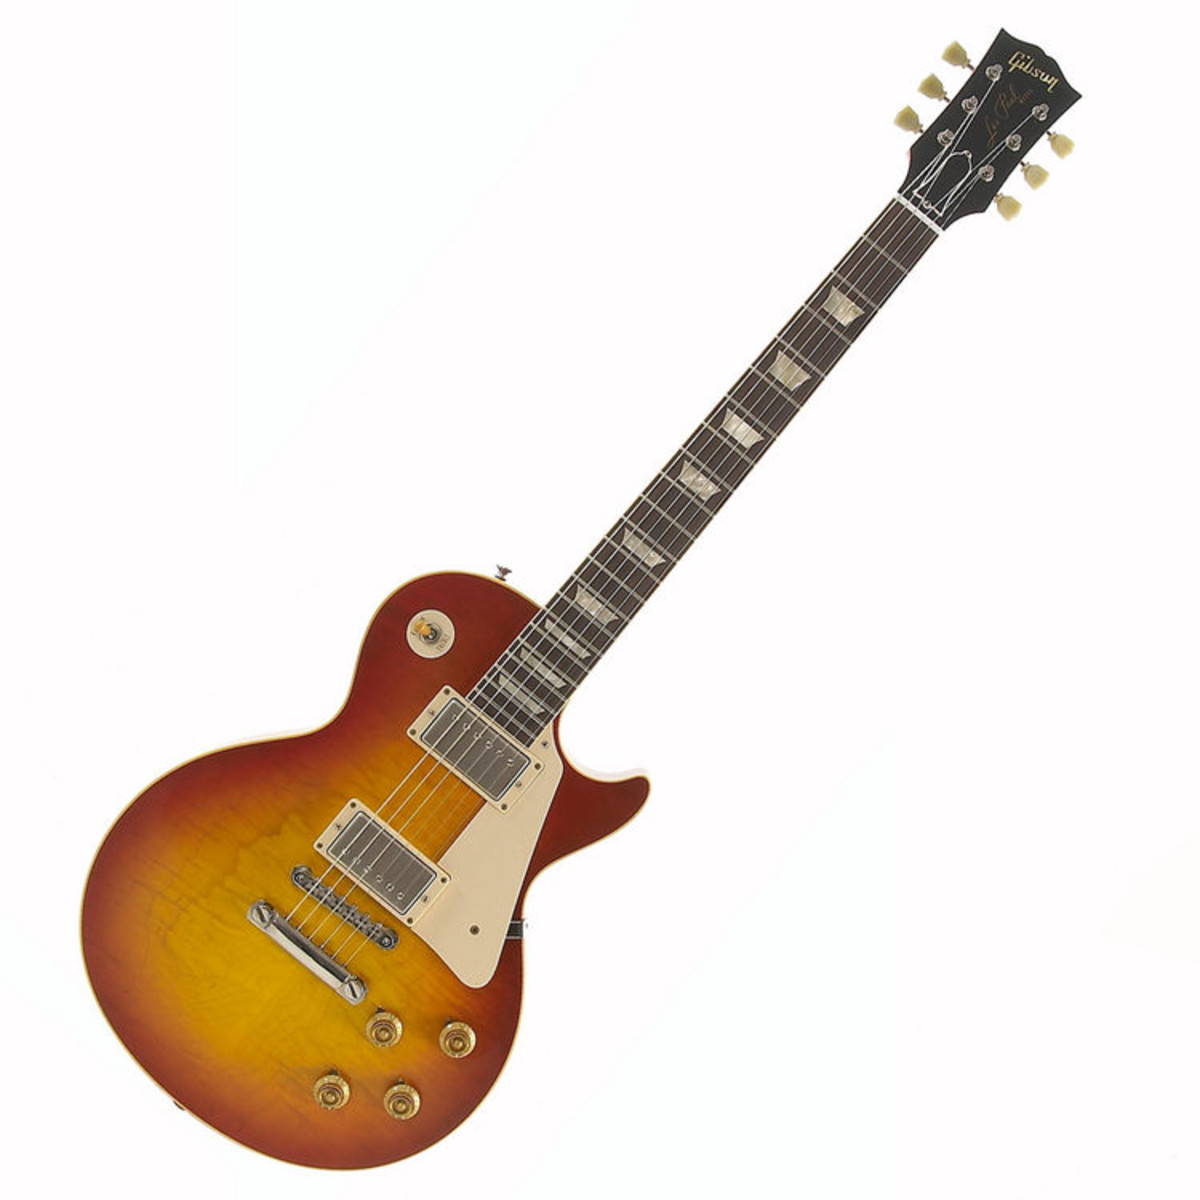 1959 Gibson Les Paul : gibson les paul 1959 reissue v o s washed cherry at gear4music ~ Russianpoet.info Haus und Dekorationen